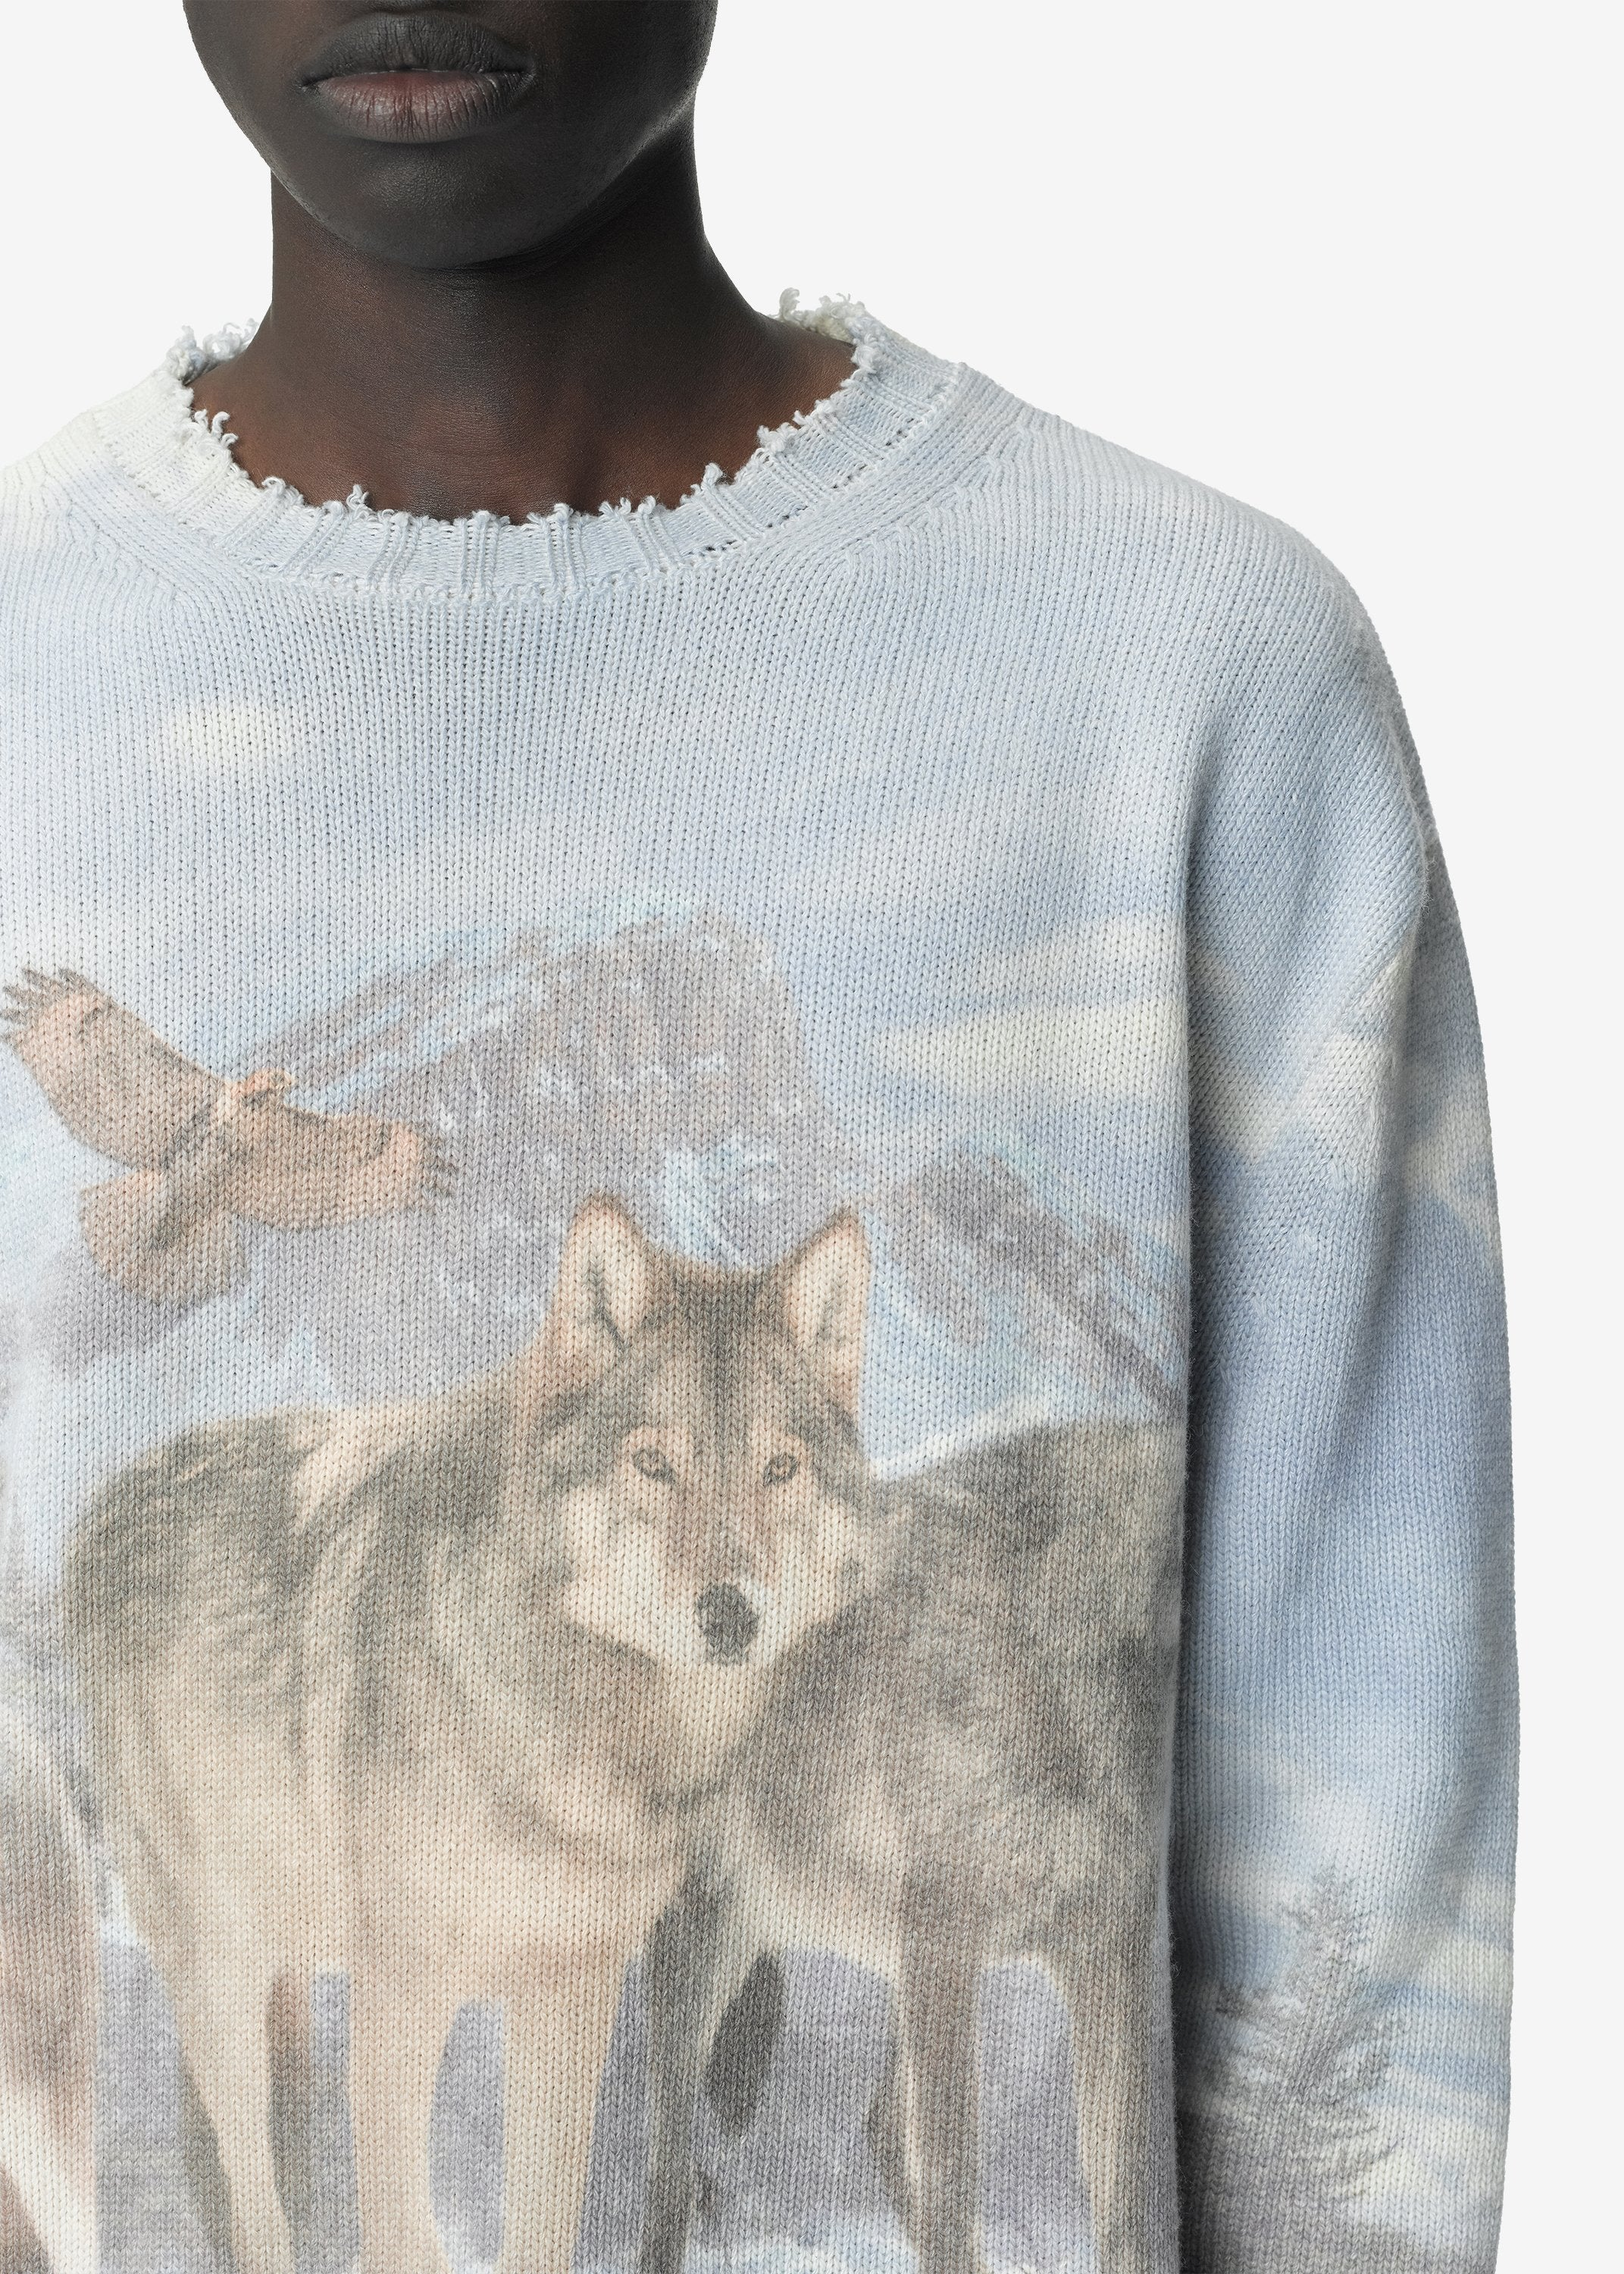 digital-print-wolves-crewneck-multicolor-image-2